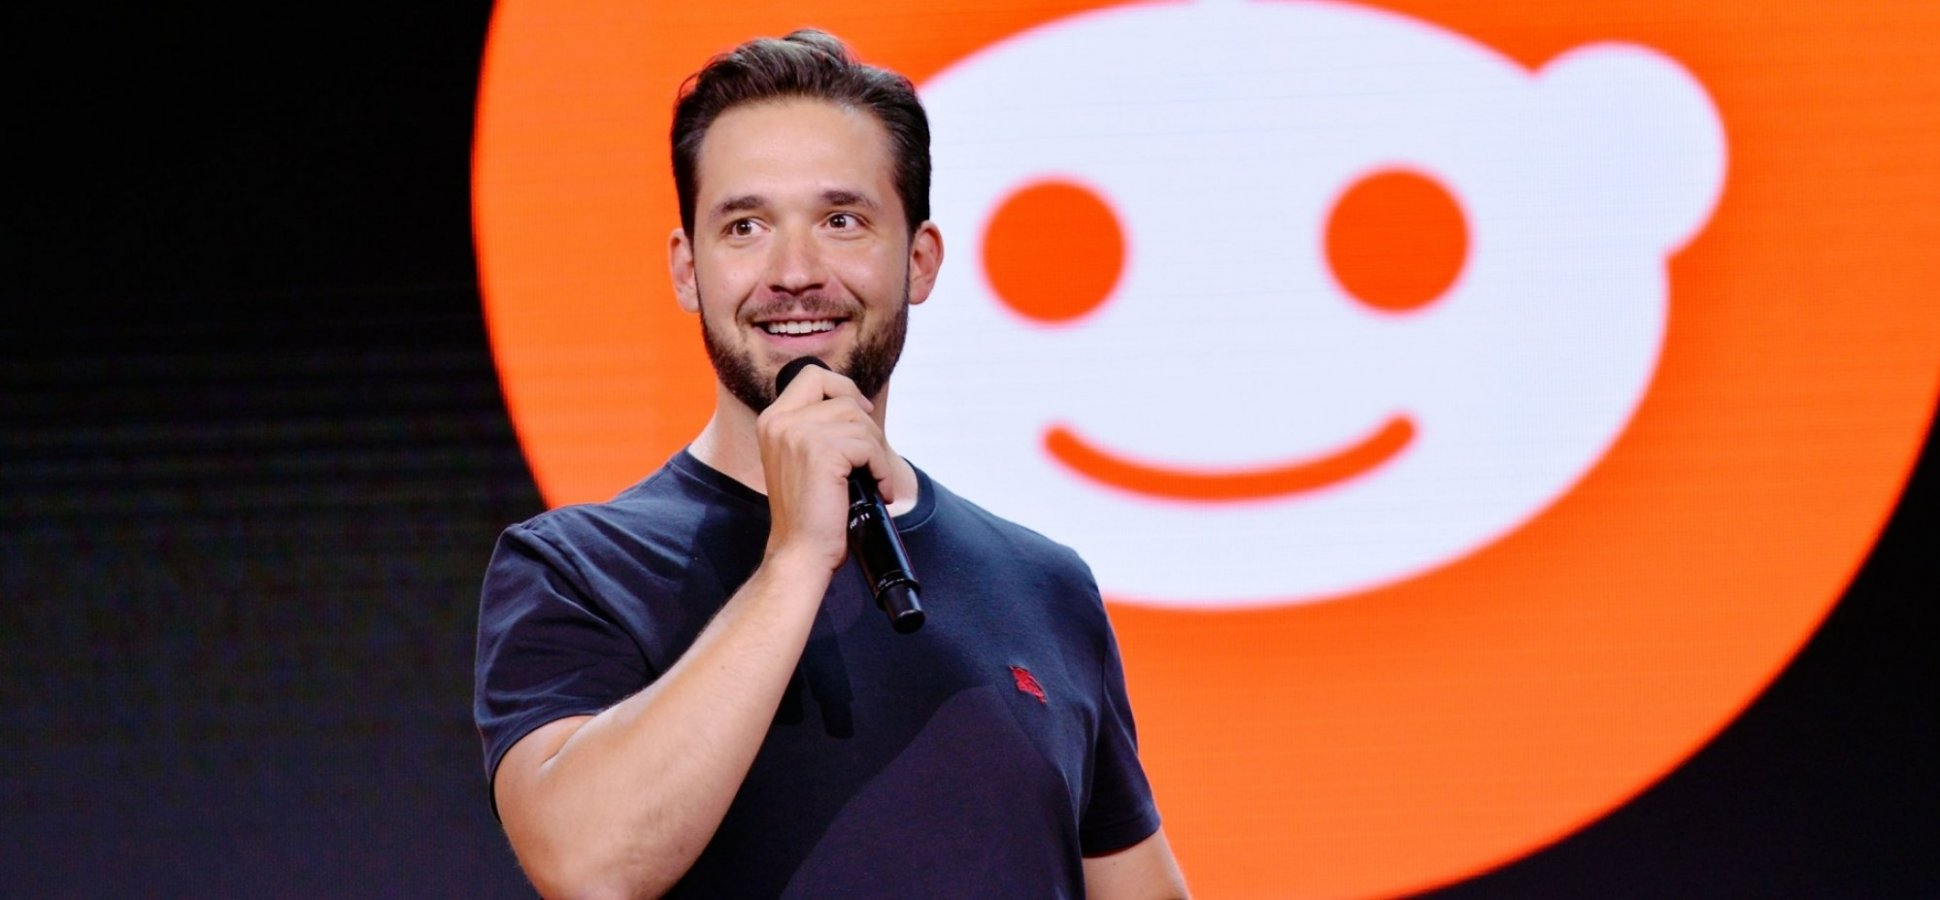 Why Reddit Co-Founder Alexis Ohanian Lives by This 3-Word Mantra (and You Should Too)